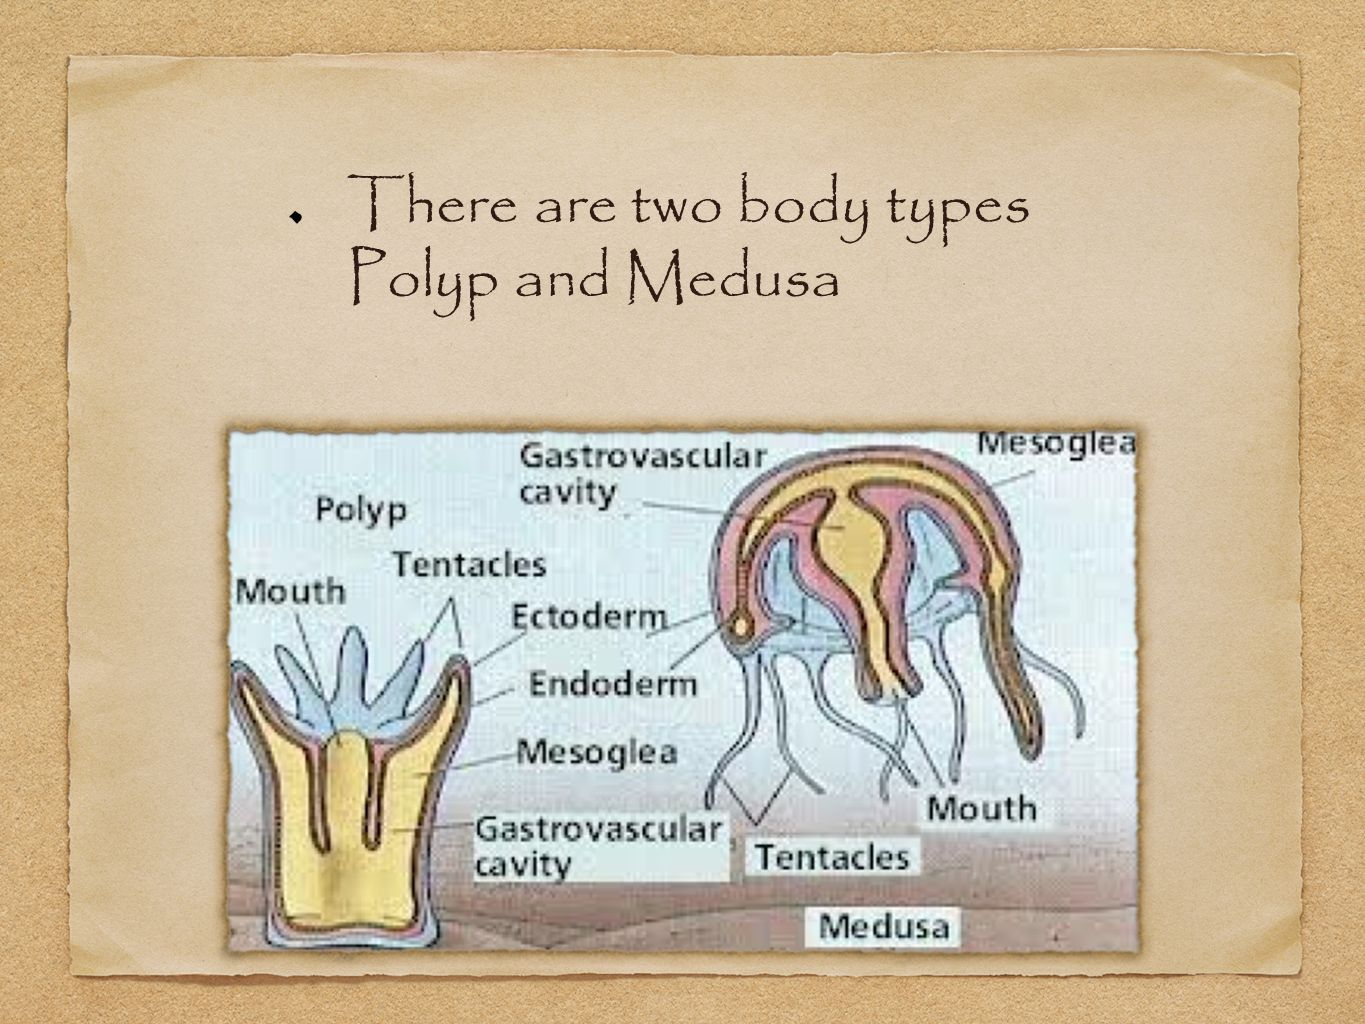 There are two body types Polyp and Medusa